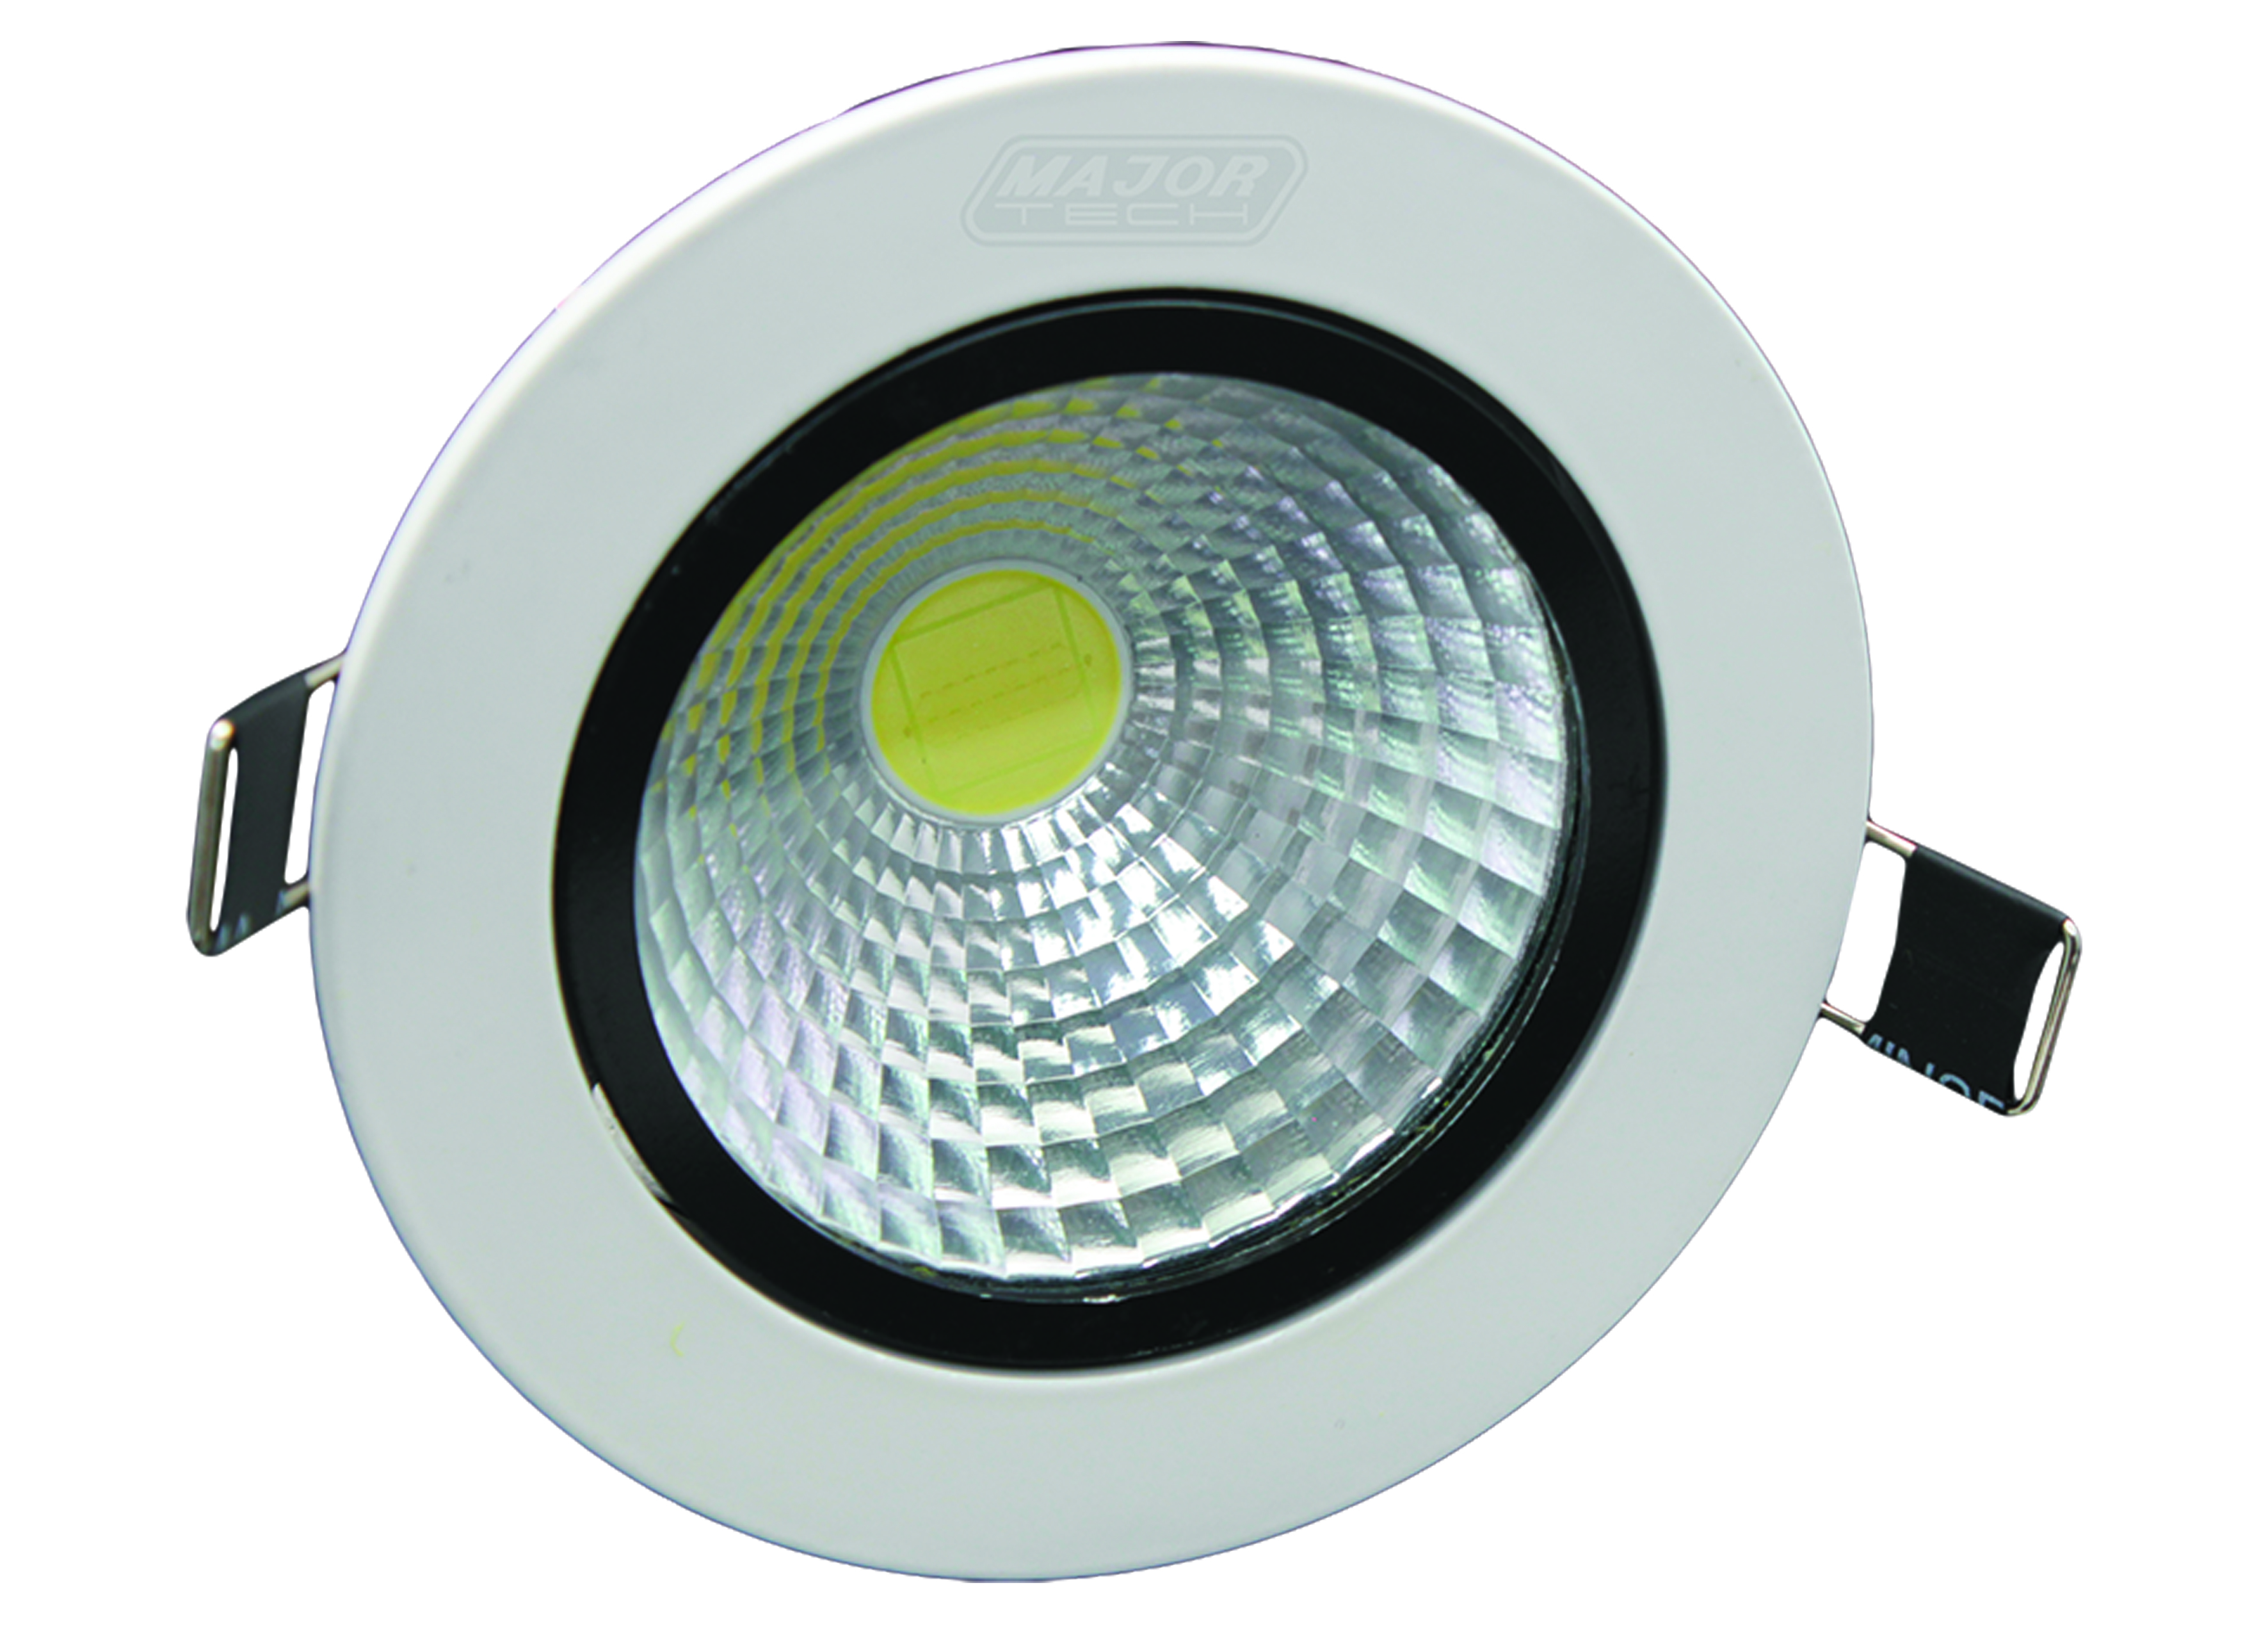 Non-Dimmable Bathroom Cool White Ceiling Lights (C2W-3C) - VETi